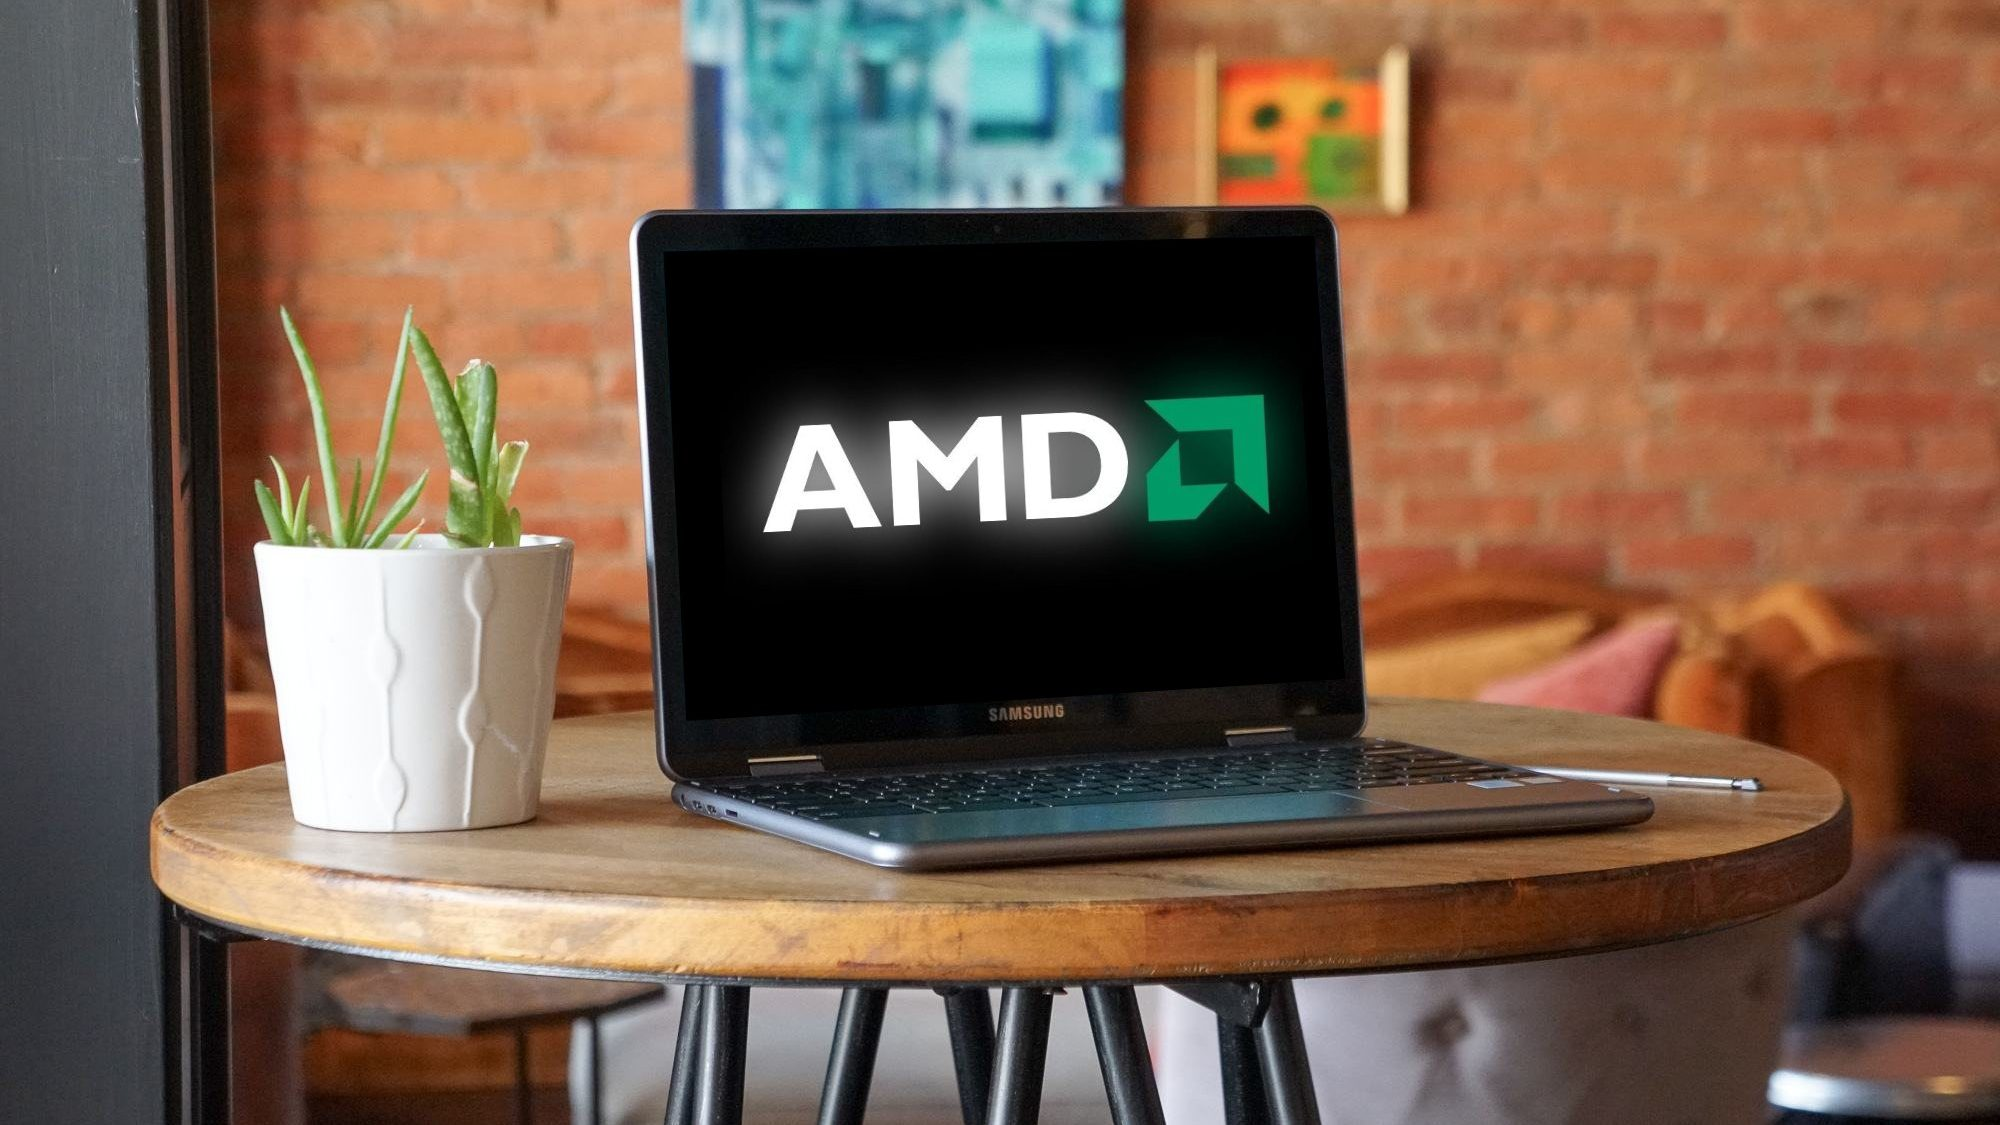 Upcoming AMD-powered Chromebooks will internally stow and charge a USI stylus